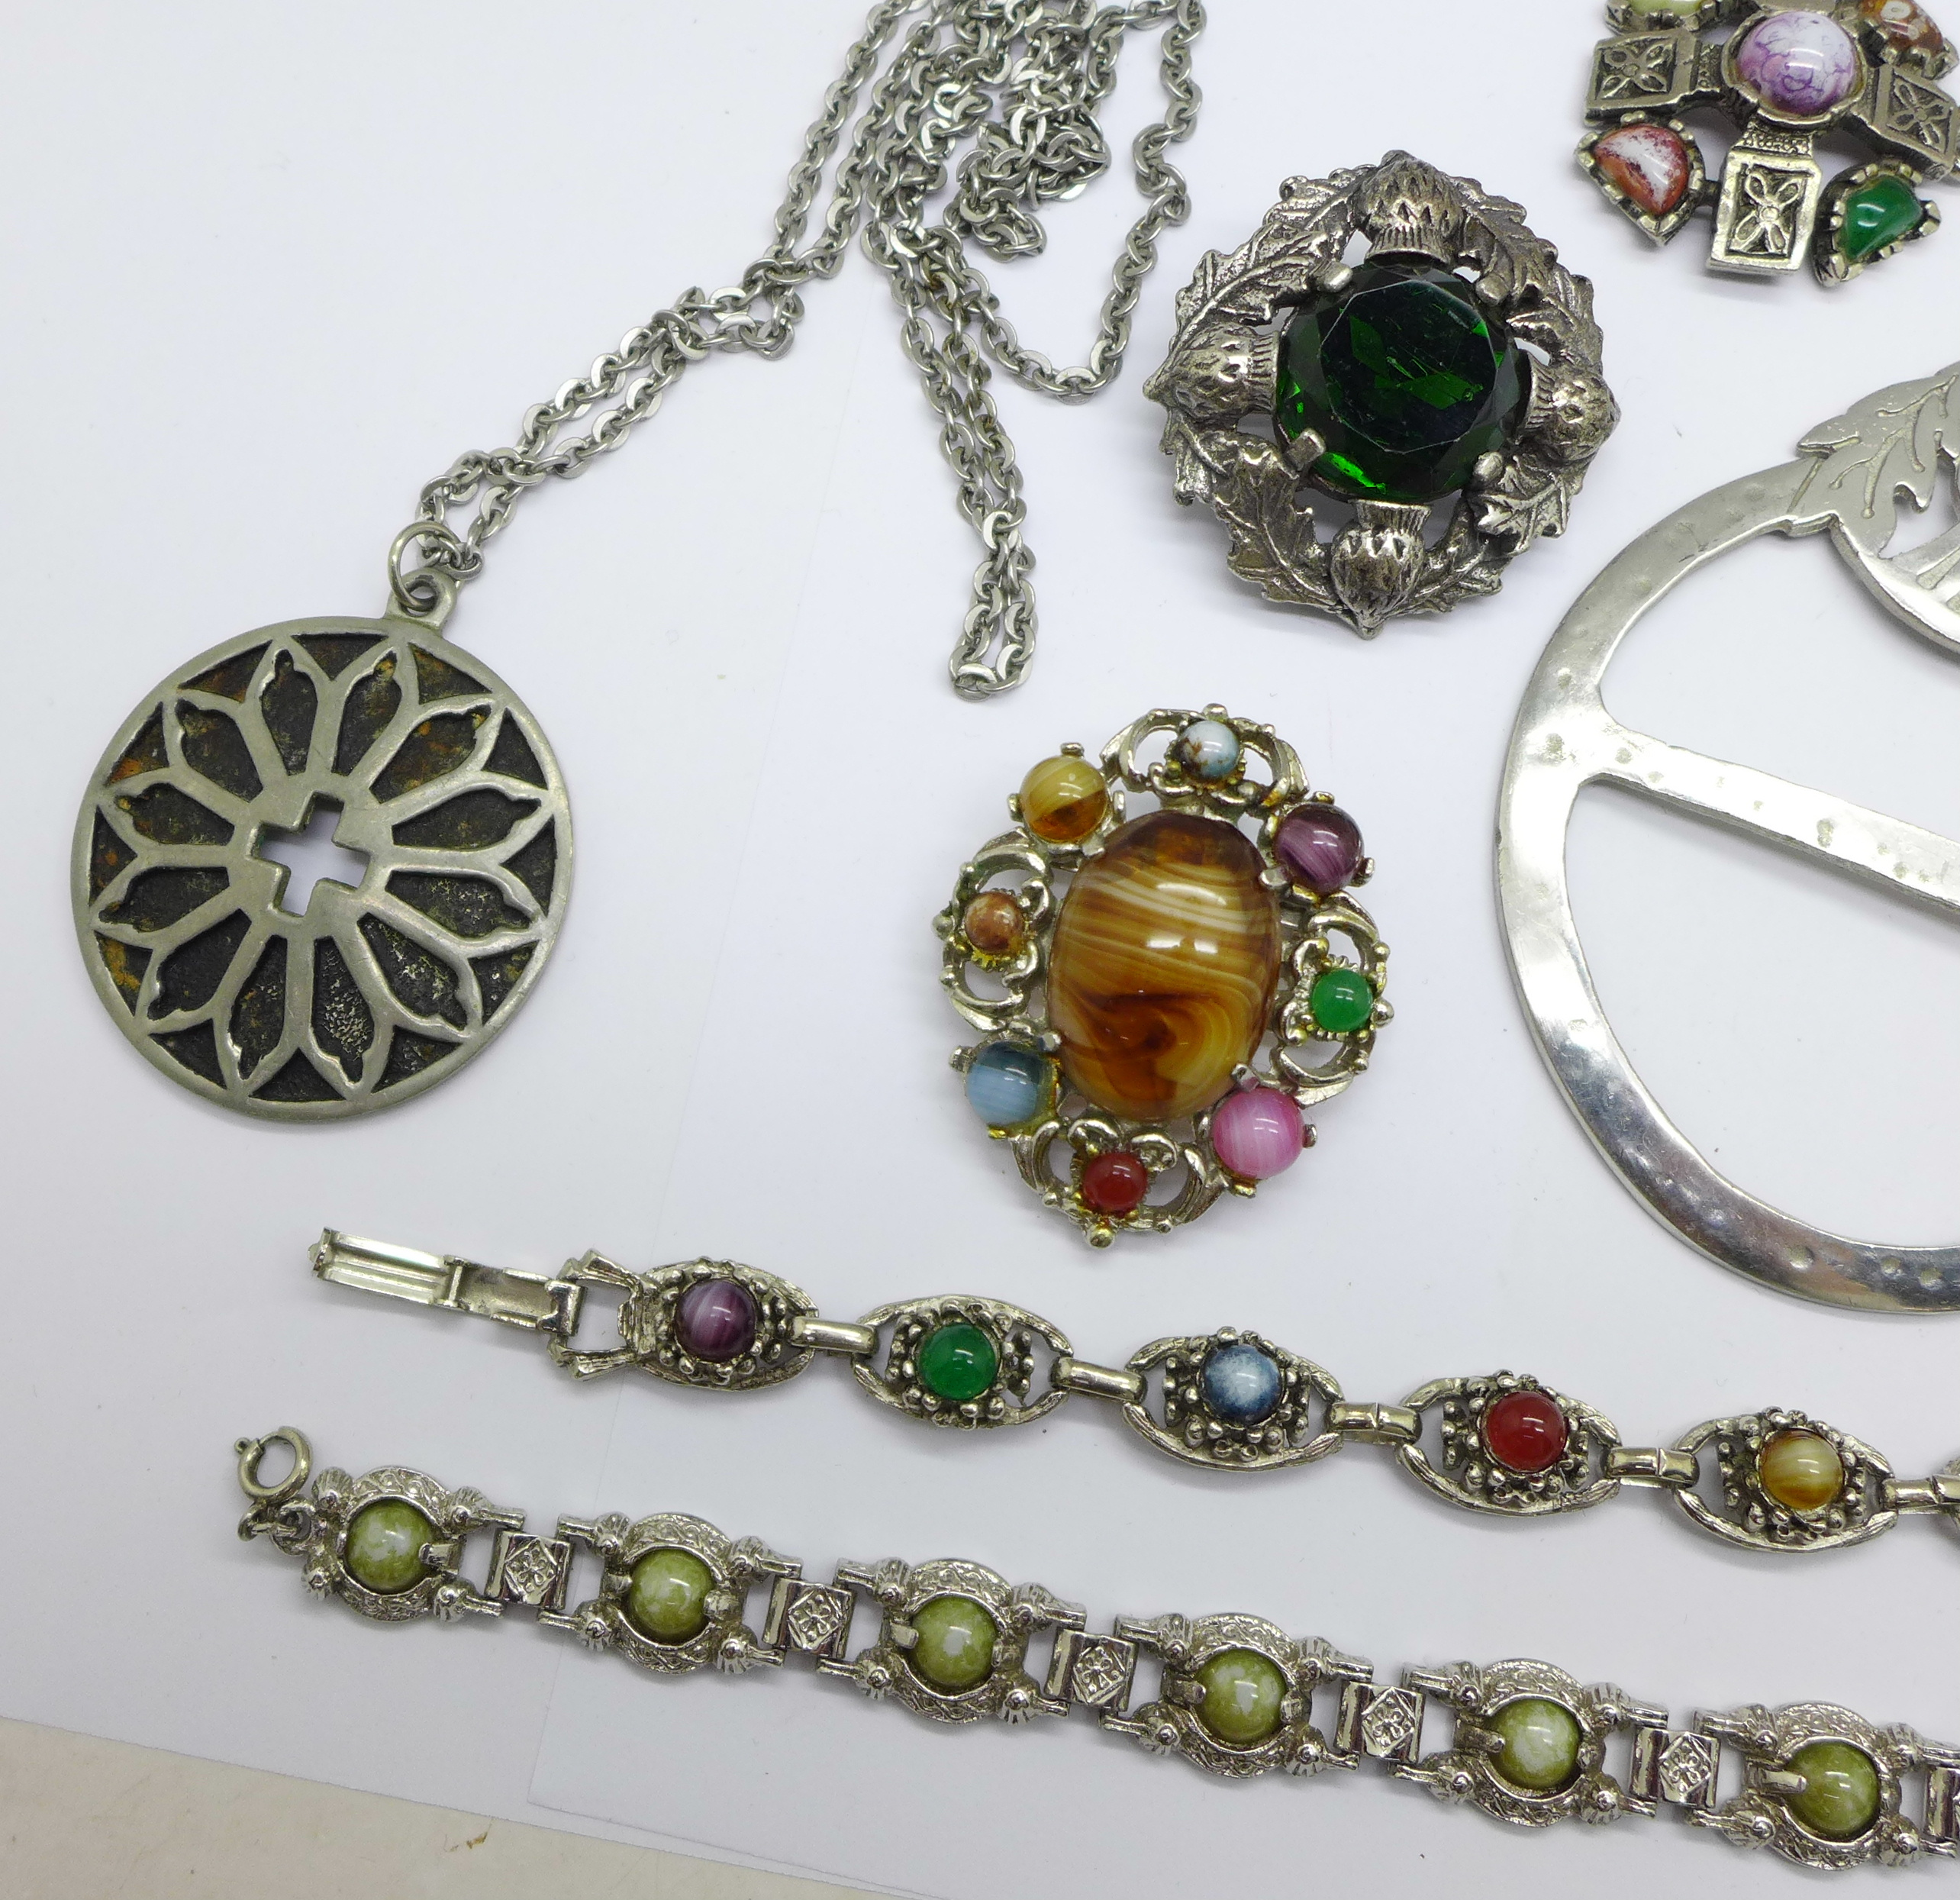 Celtic jewellery including Miracle and Justin pewter - Image 2 of 3